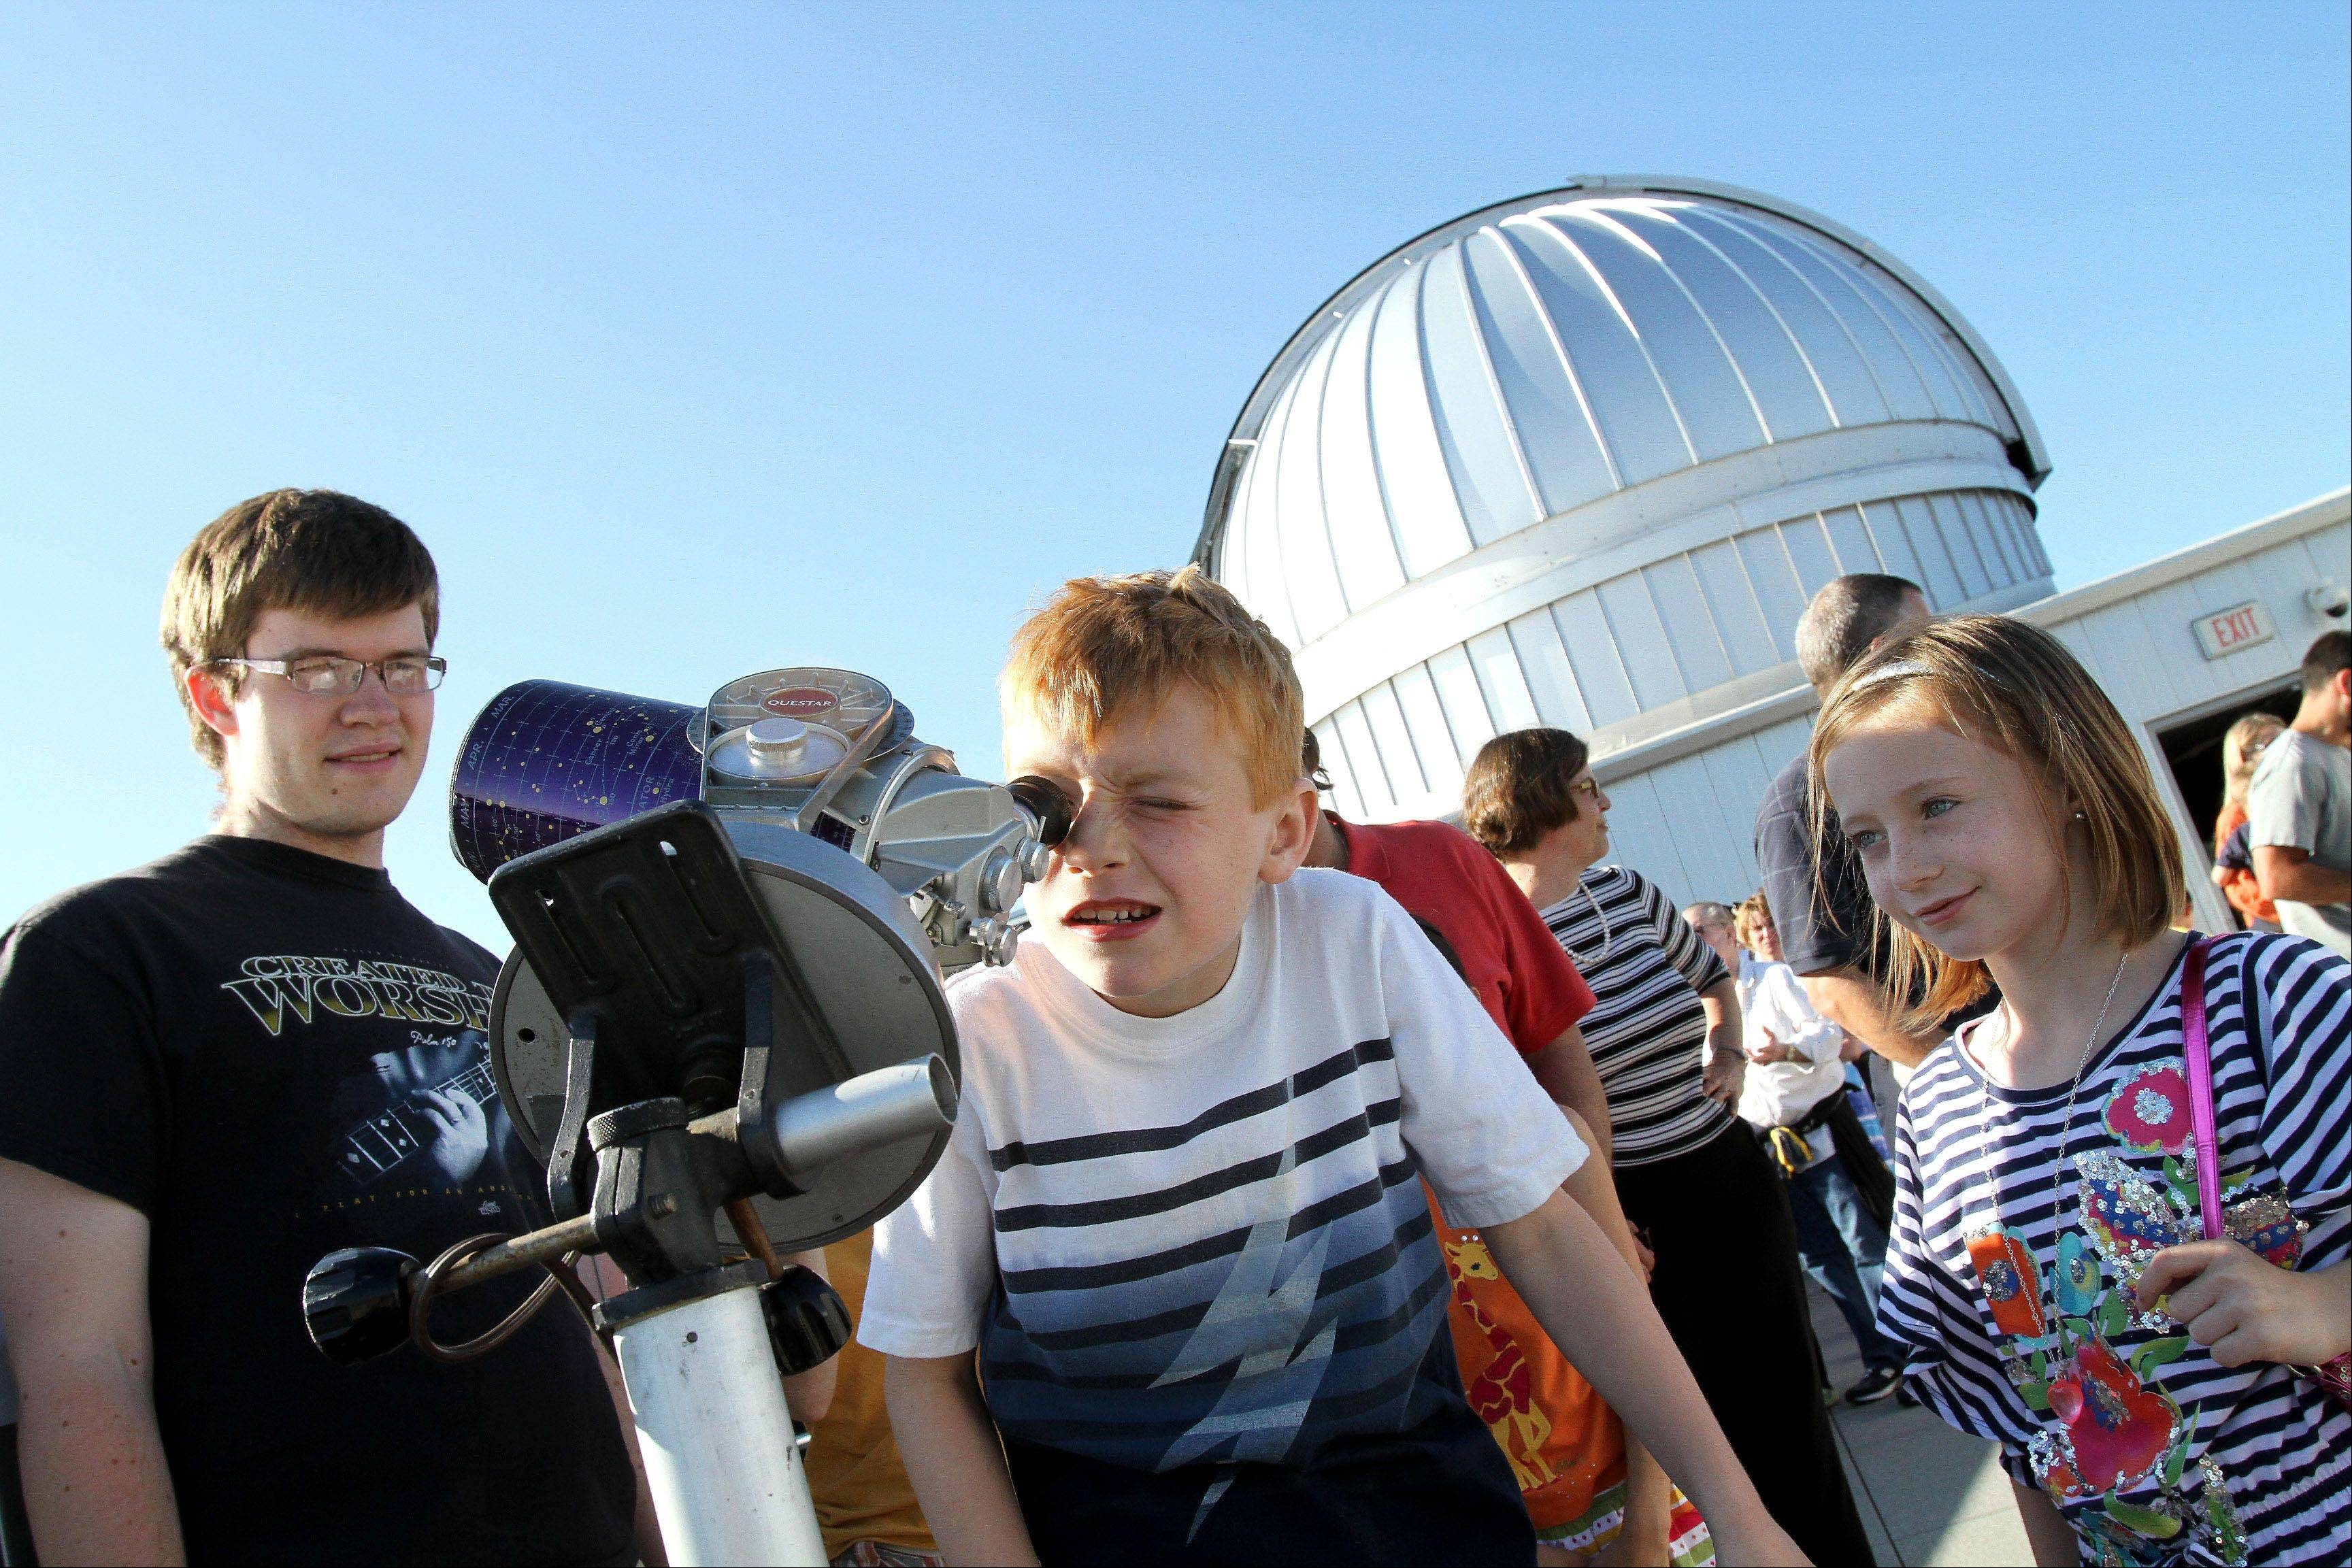 Sam Gibbons, 8, of Lombard, takes a look through a smaller telescope on the roof of the Wheaton College Astronomical Observatory, which opened Tuesday evening for free viewings of the Transit of Venus. On the right is Sam's sister Gracie, 10 and on the left is student Daniel Flavin, helping out with the event. Hundreds of people lined up to look through several different telescopes.